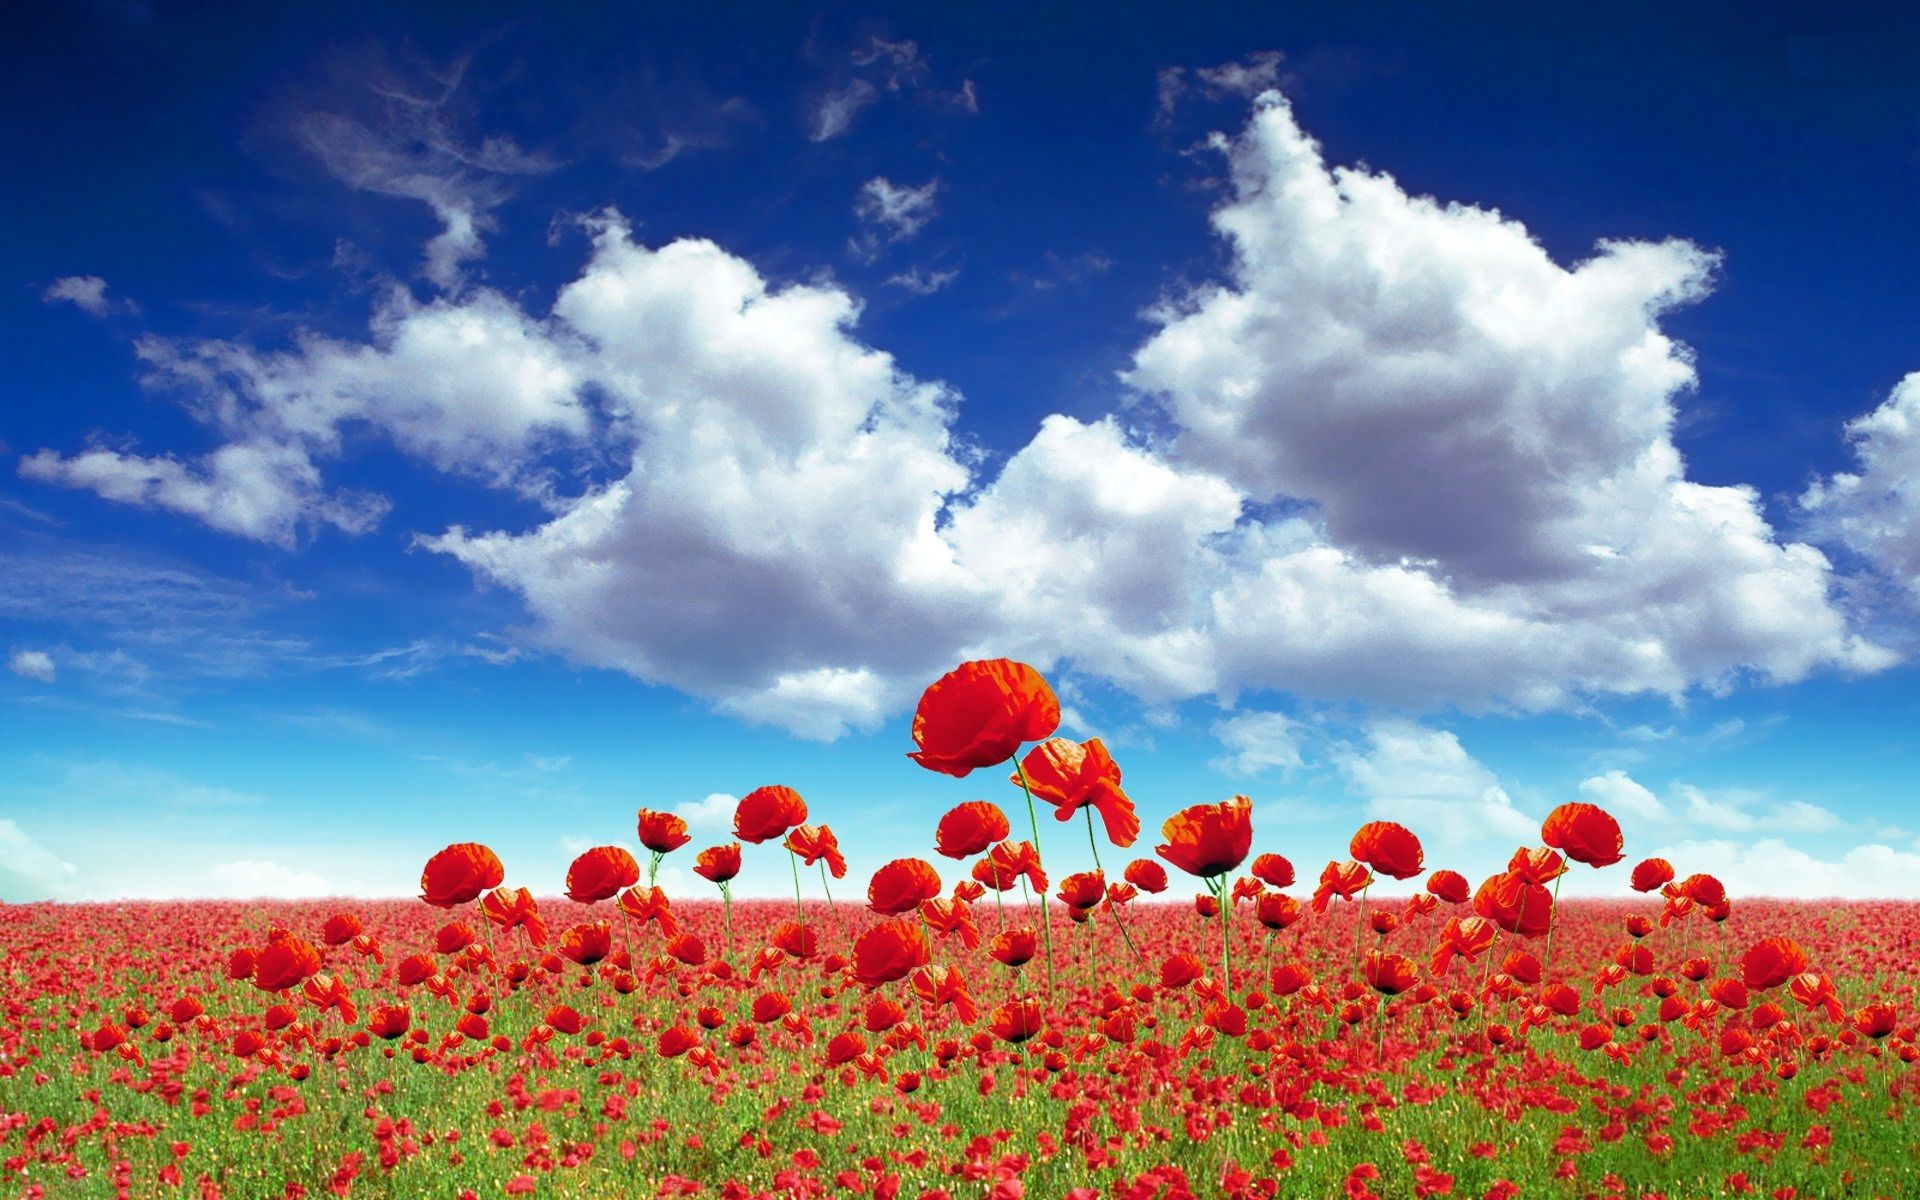 Field Of Flowers Hd Wallpaper Wallpapers Backgrounds Images Art Photos Field Wallpaper Beautiful Flowers Wallpapers Poppy Wallpaper